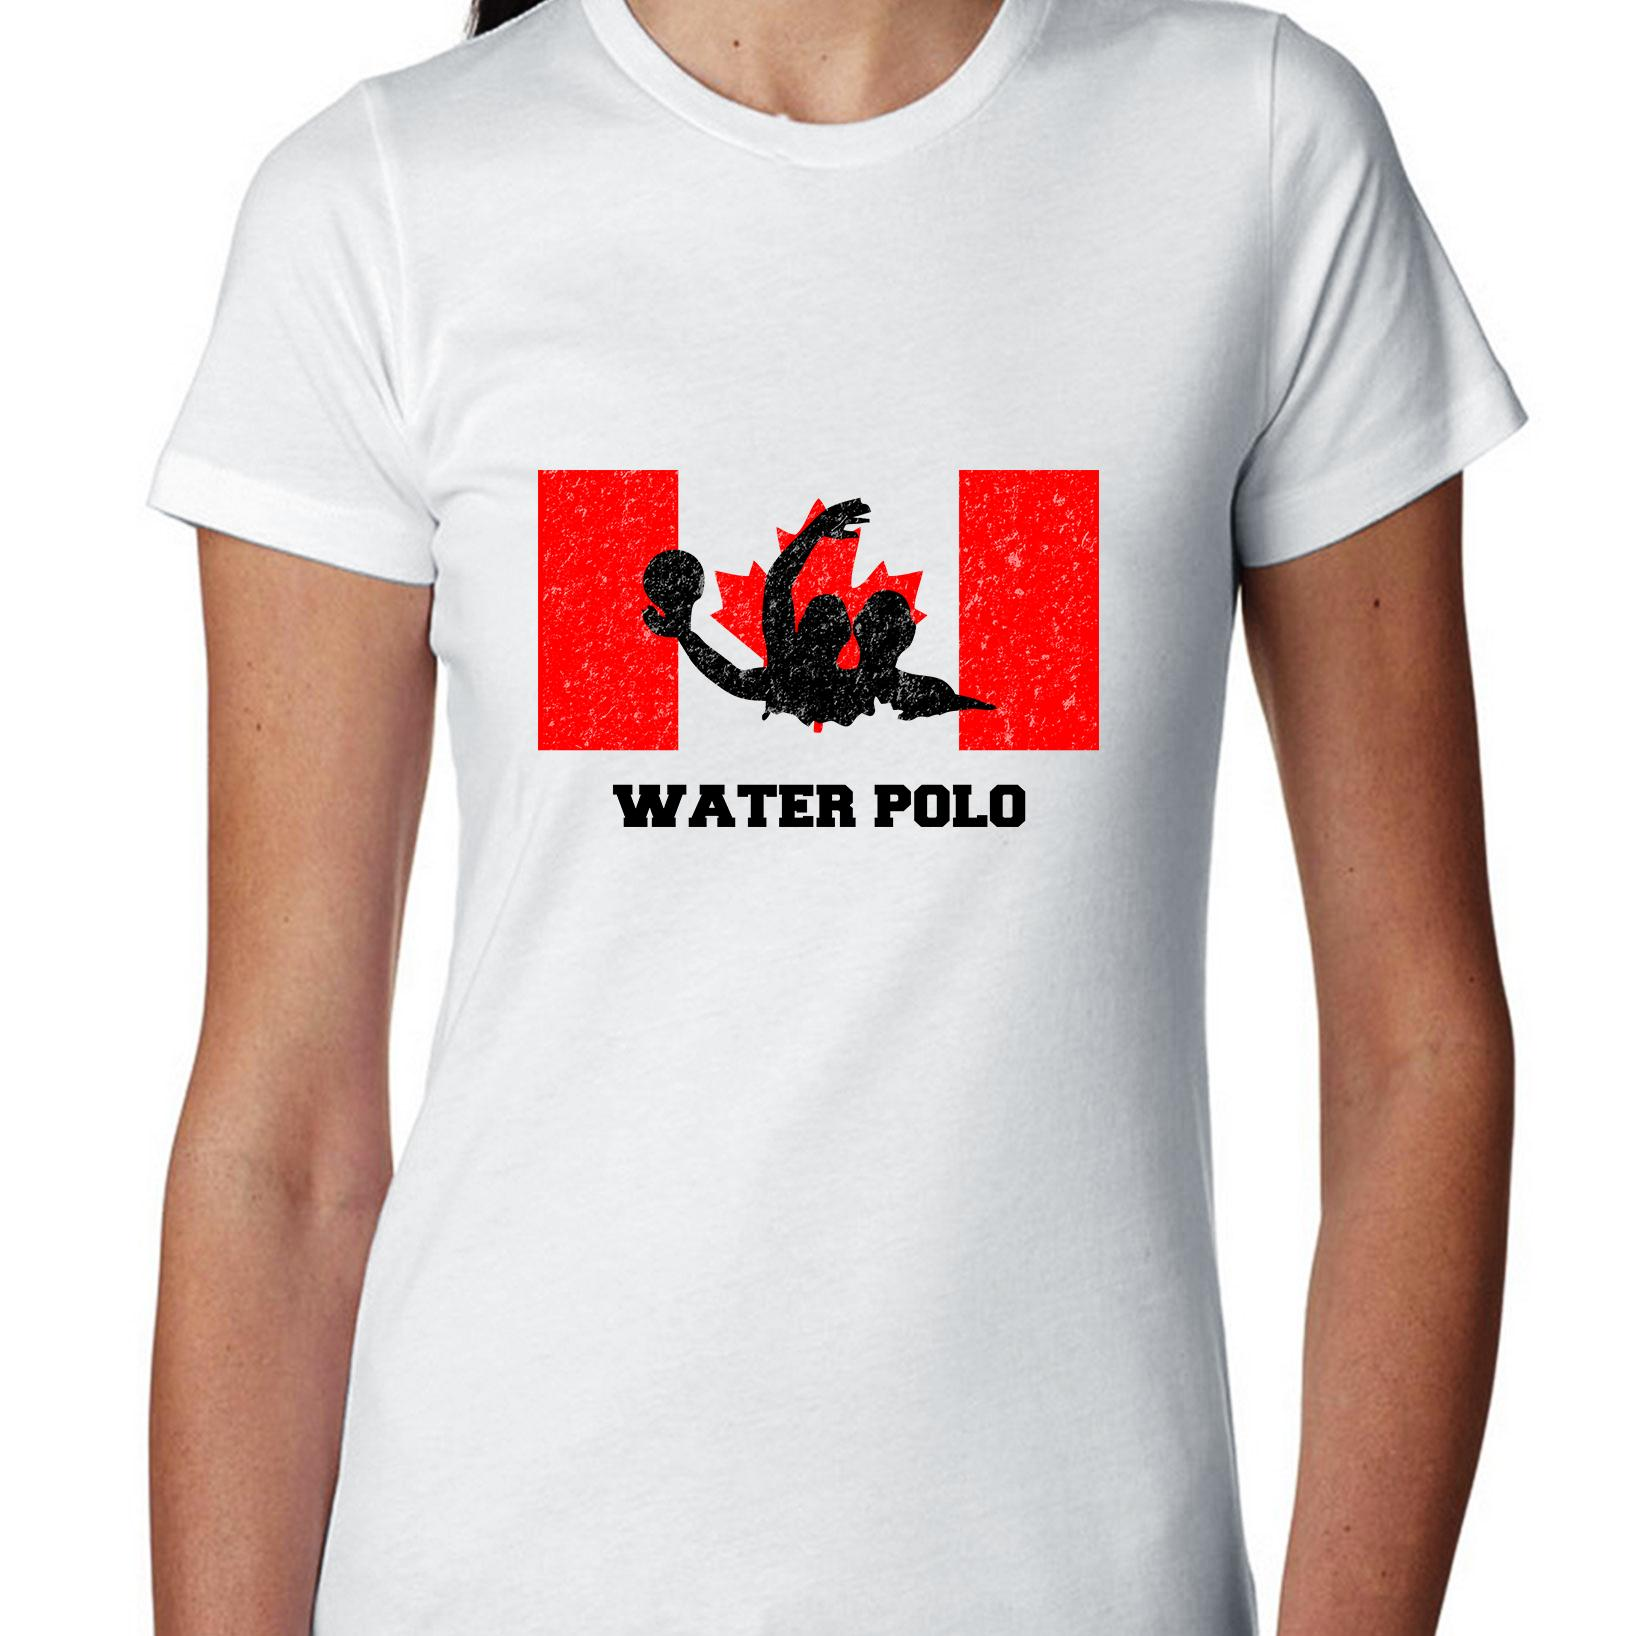 Canada Olympic Water Polo Flag Silhouette Women's Cotton T-Shirt by Hollywood Thread